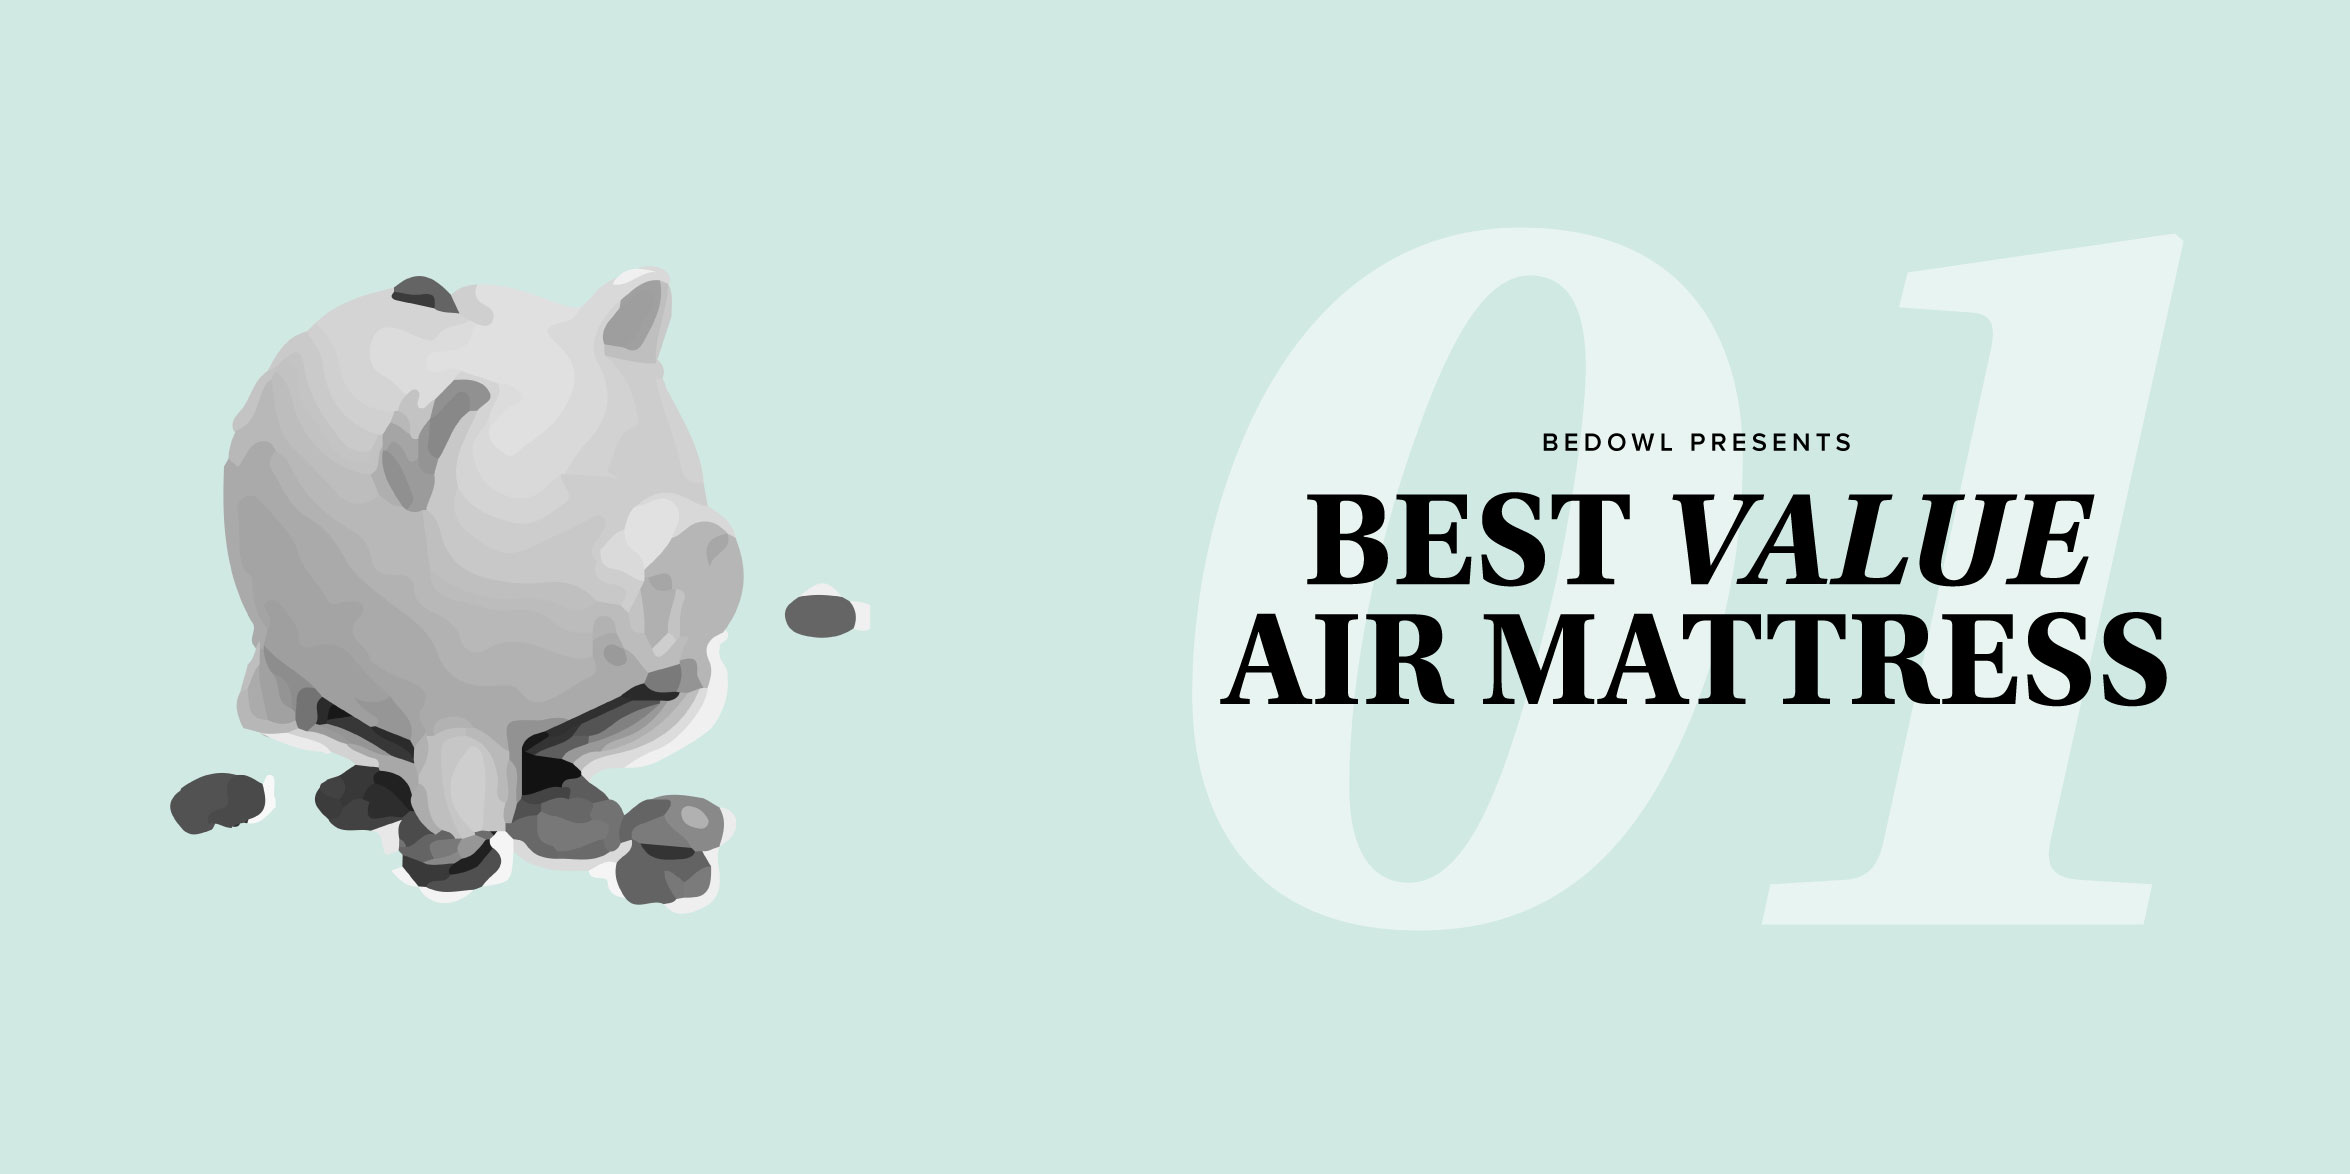 The Cheapest Air Mattresses (Under $50) by Bedowl